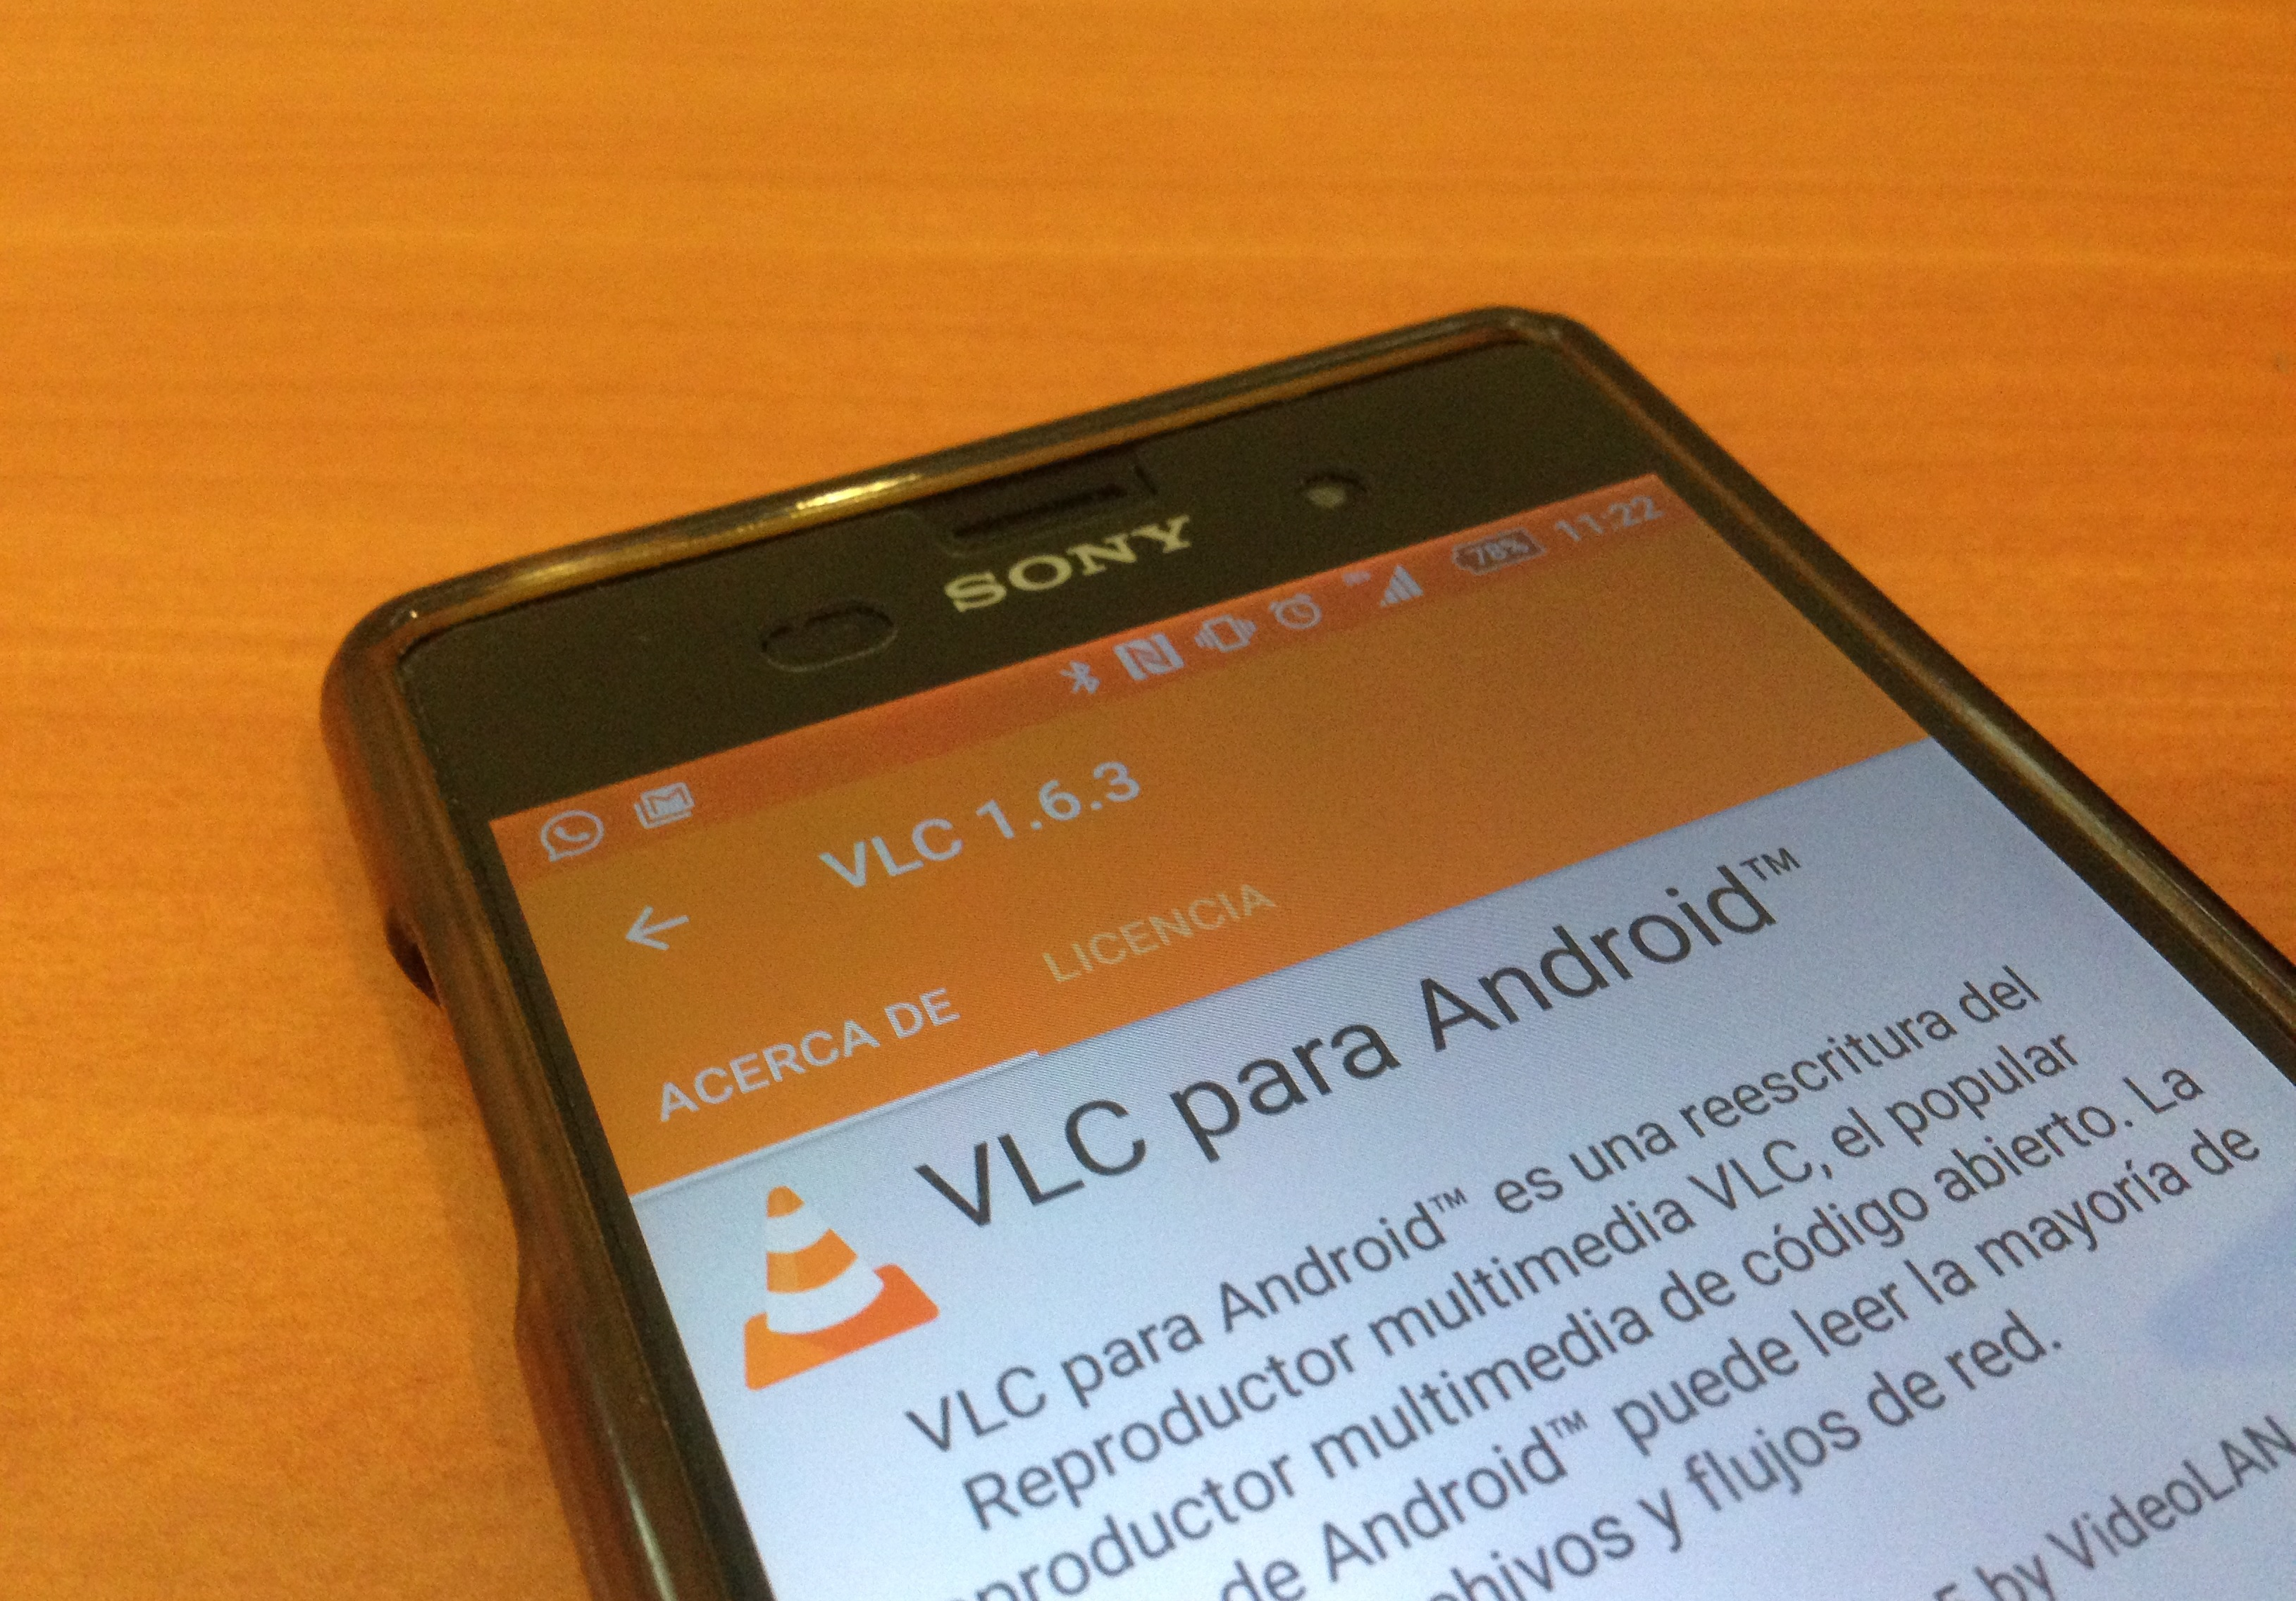 vlc android 1.6.3